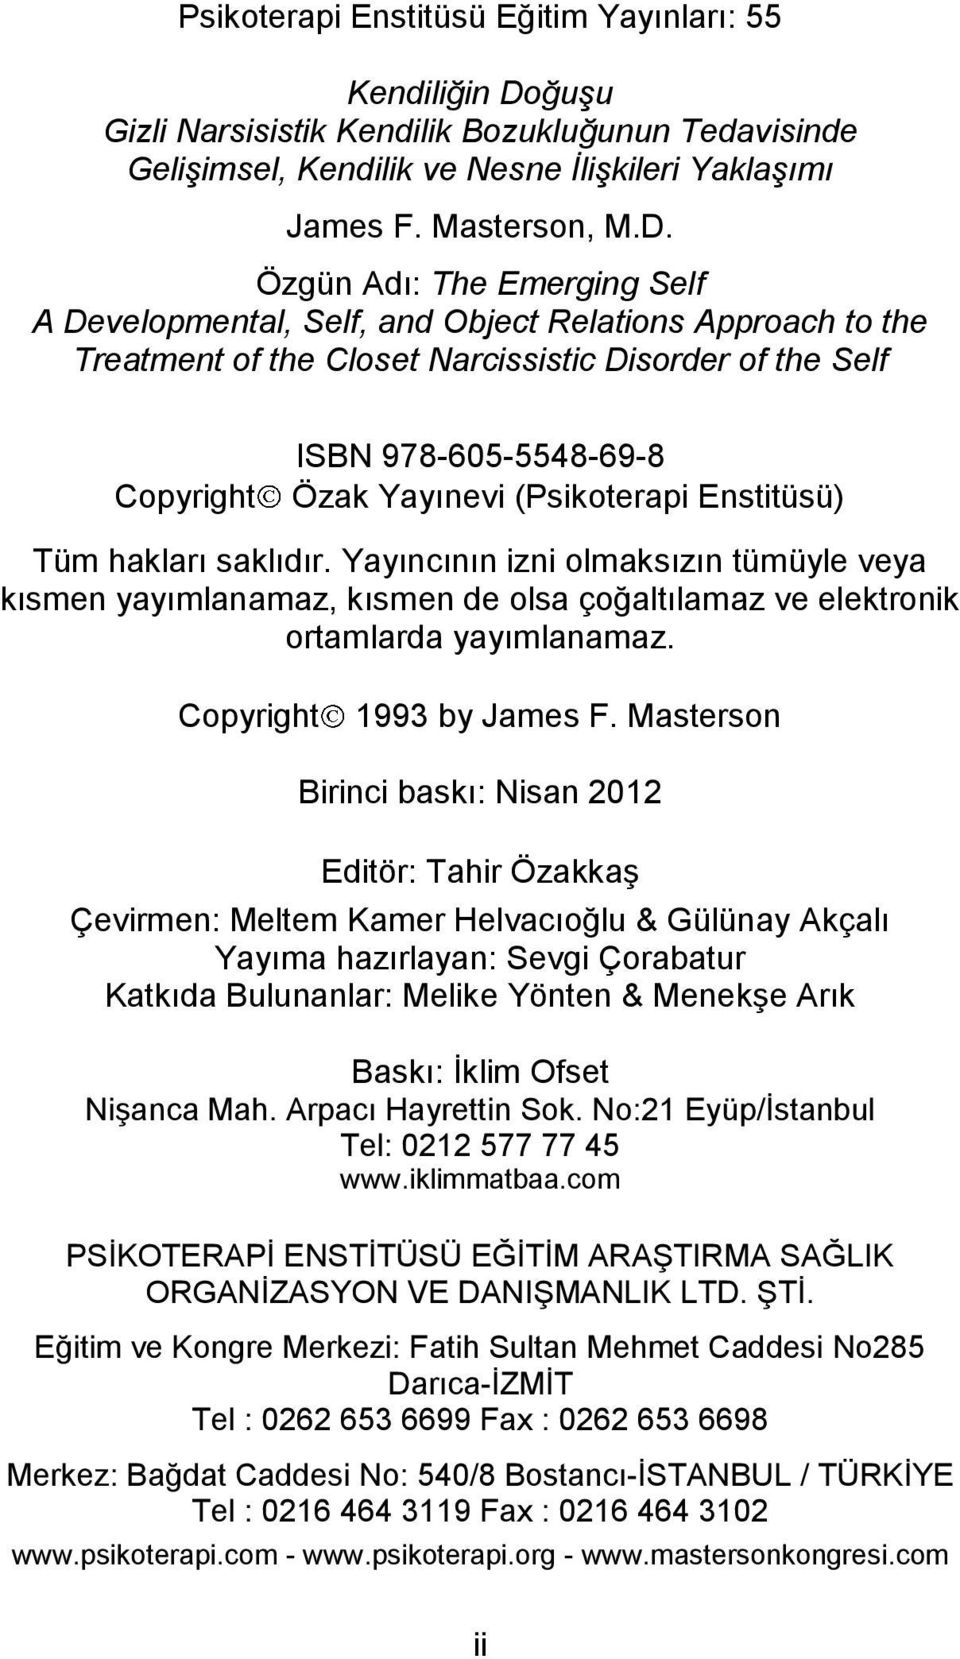 Özgün Adı: The Emerging Self A Developmental, Self, and Object Relations Approach to the Treatment of the Closet Narcissistic Disorder of the Self ISBN 978-605-5548-69-8 Copyright Özak Yayınevi